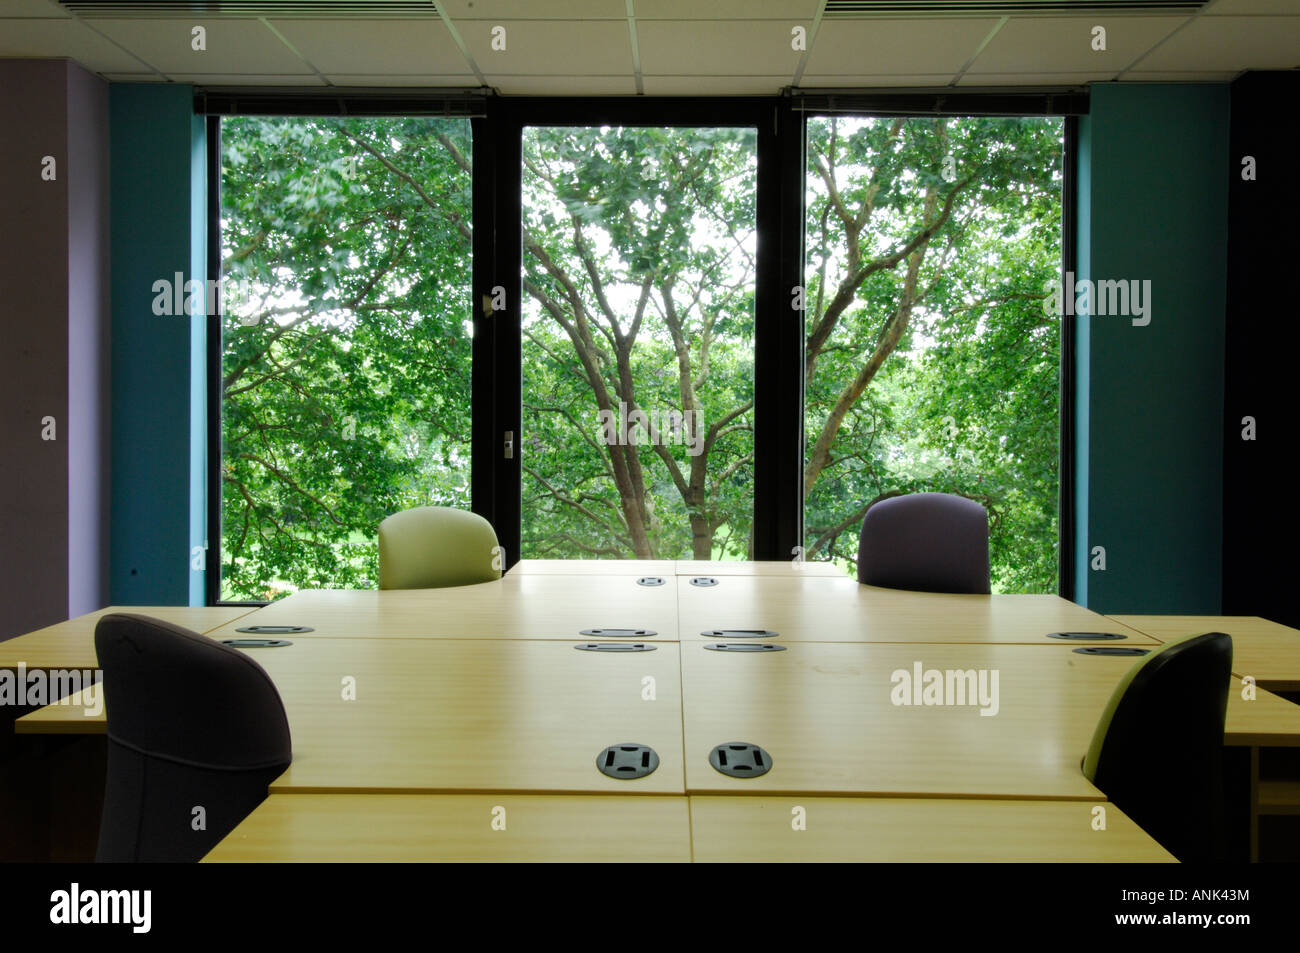 a modern office building empty meeting boardroom committee room with large official table and chairs - Stock Image